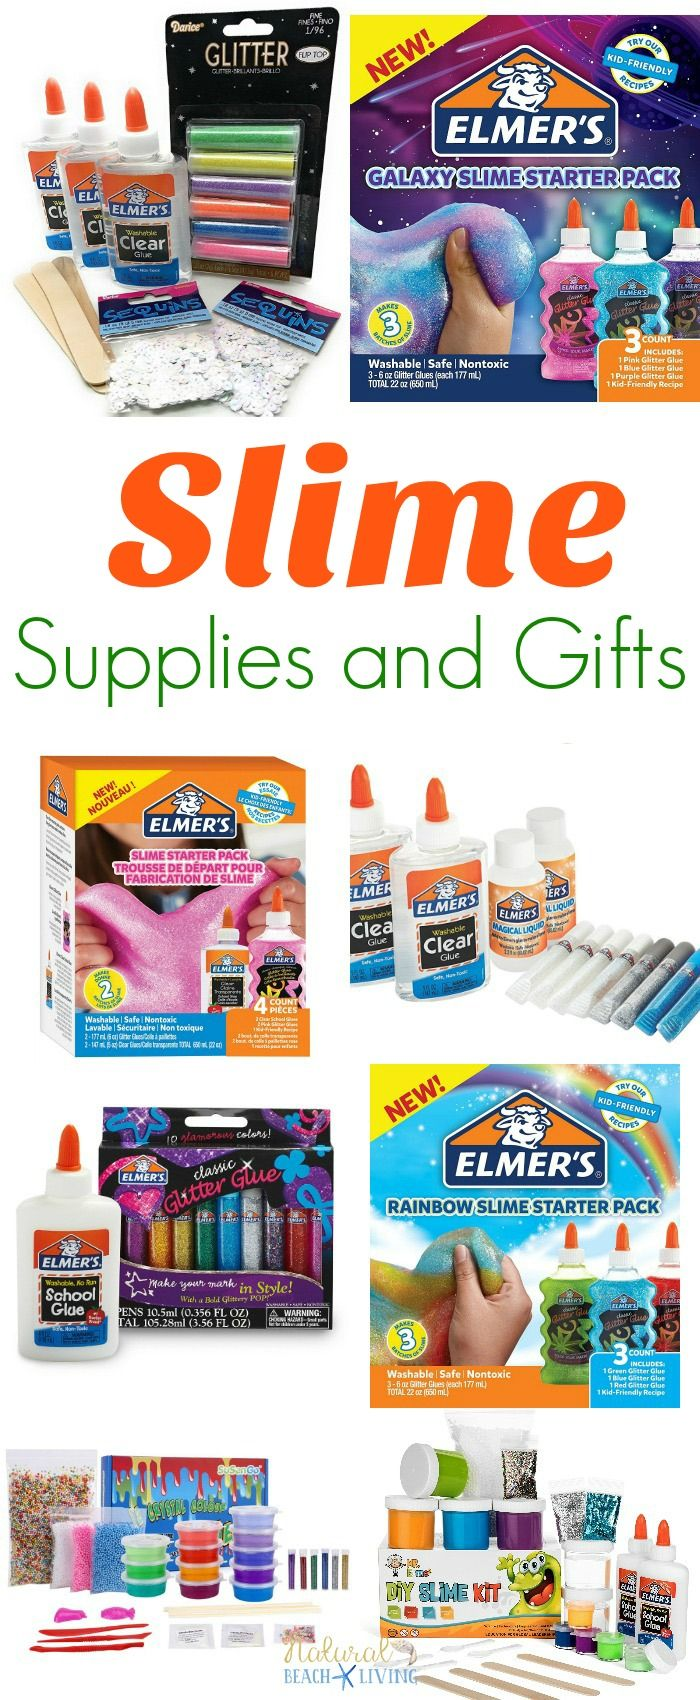 324e8bf6d The Ultimate Slime Supplies and Slime Gift Ideas, Slime Recipes, How to  make Slime, How to Make Fluffy Slime, Slime Kits, Homemade Slime Recipes,  ...